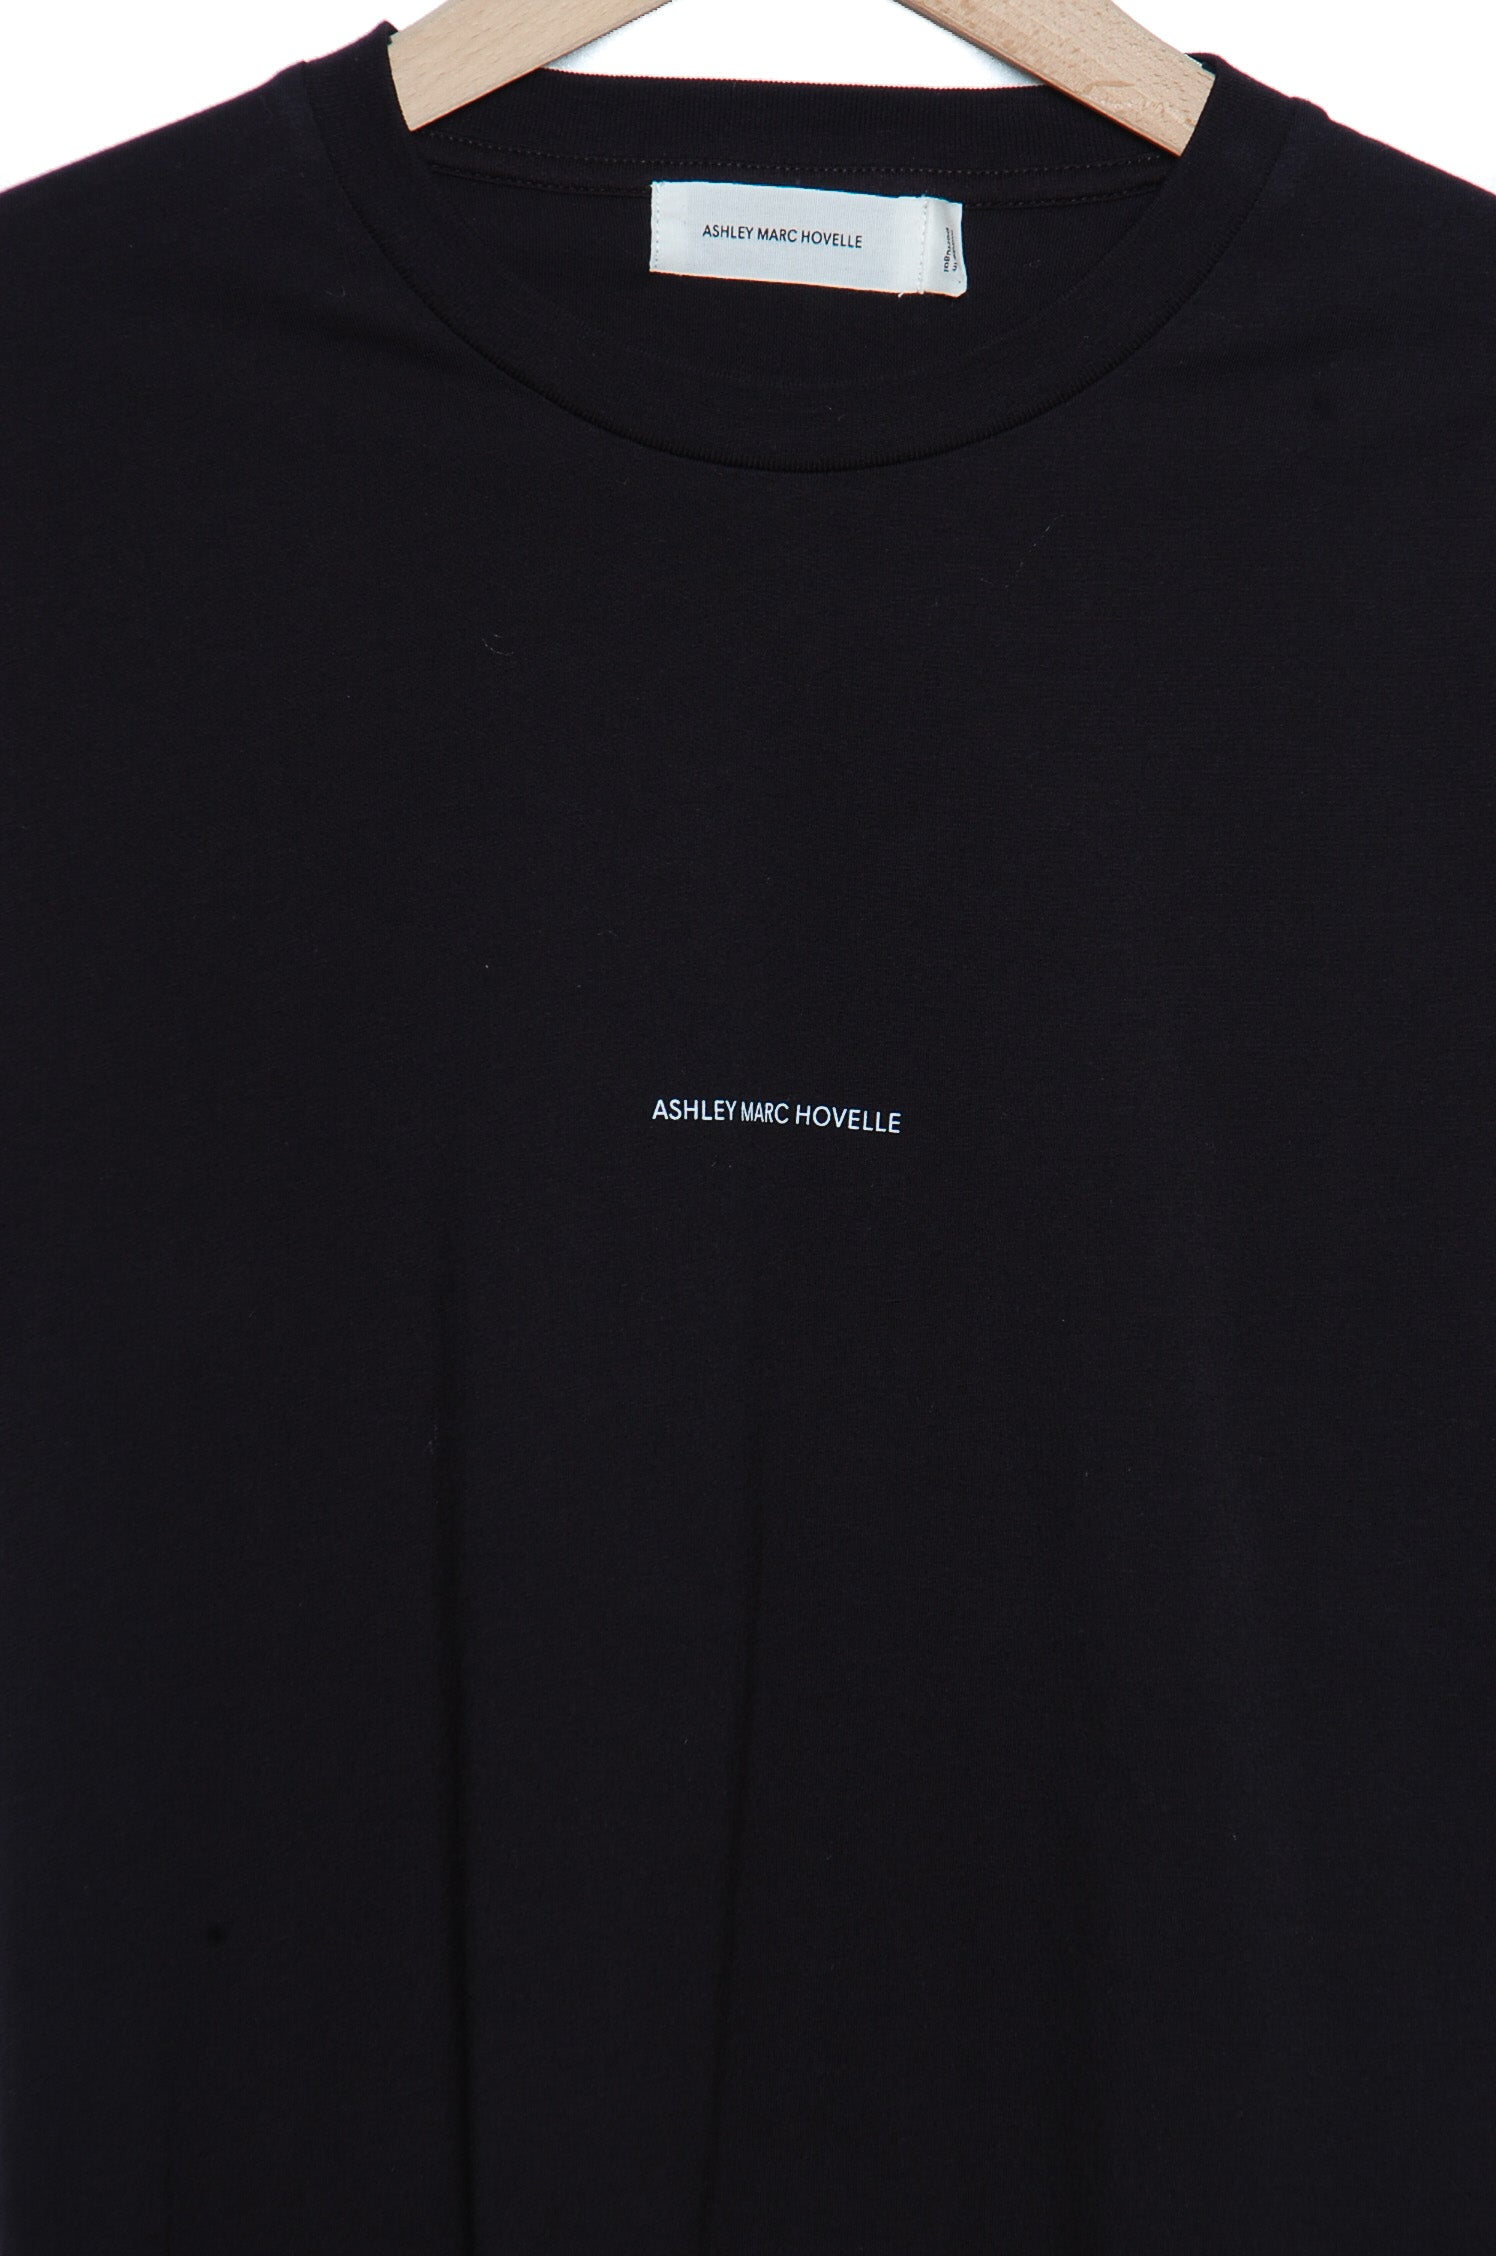 Ashley Marc Hovelle T-Shirt black